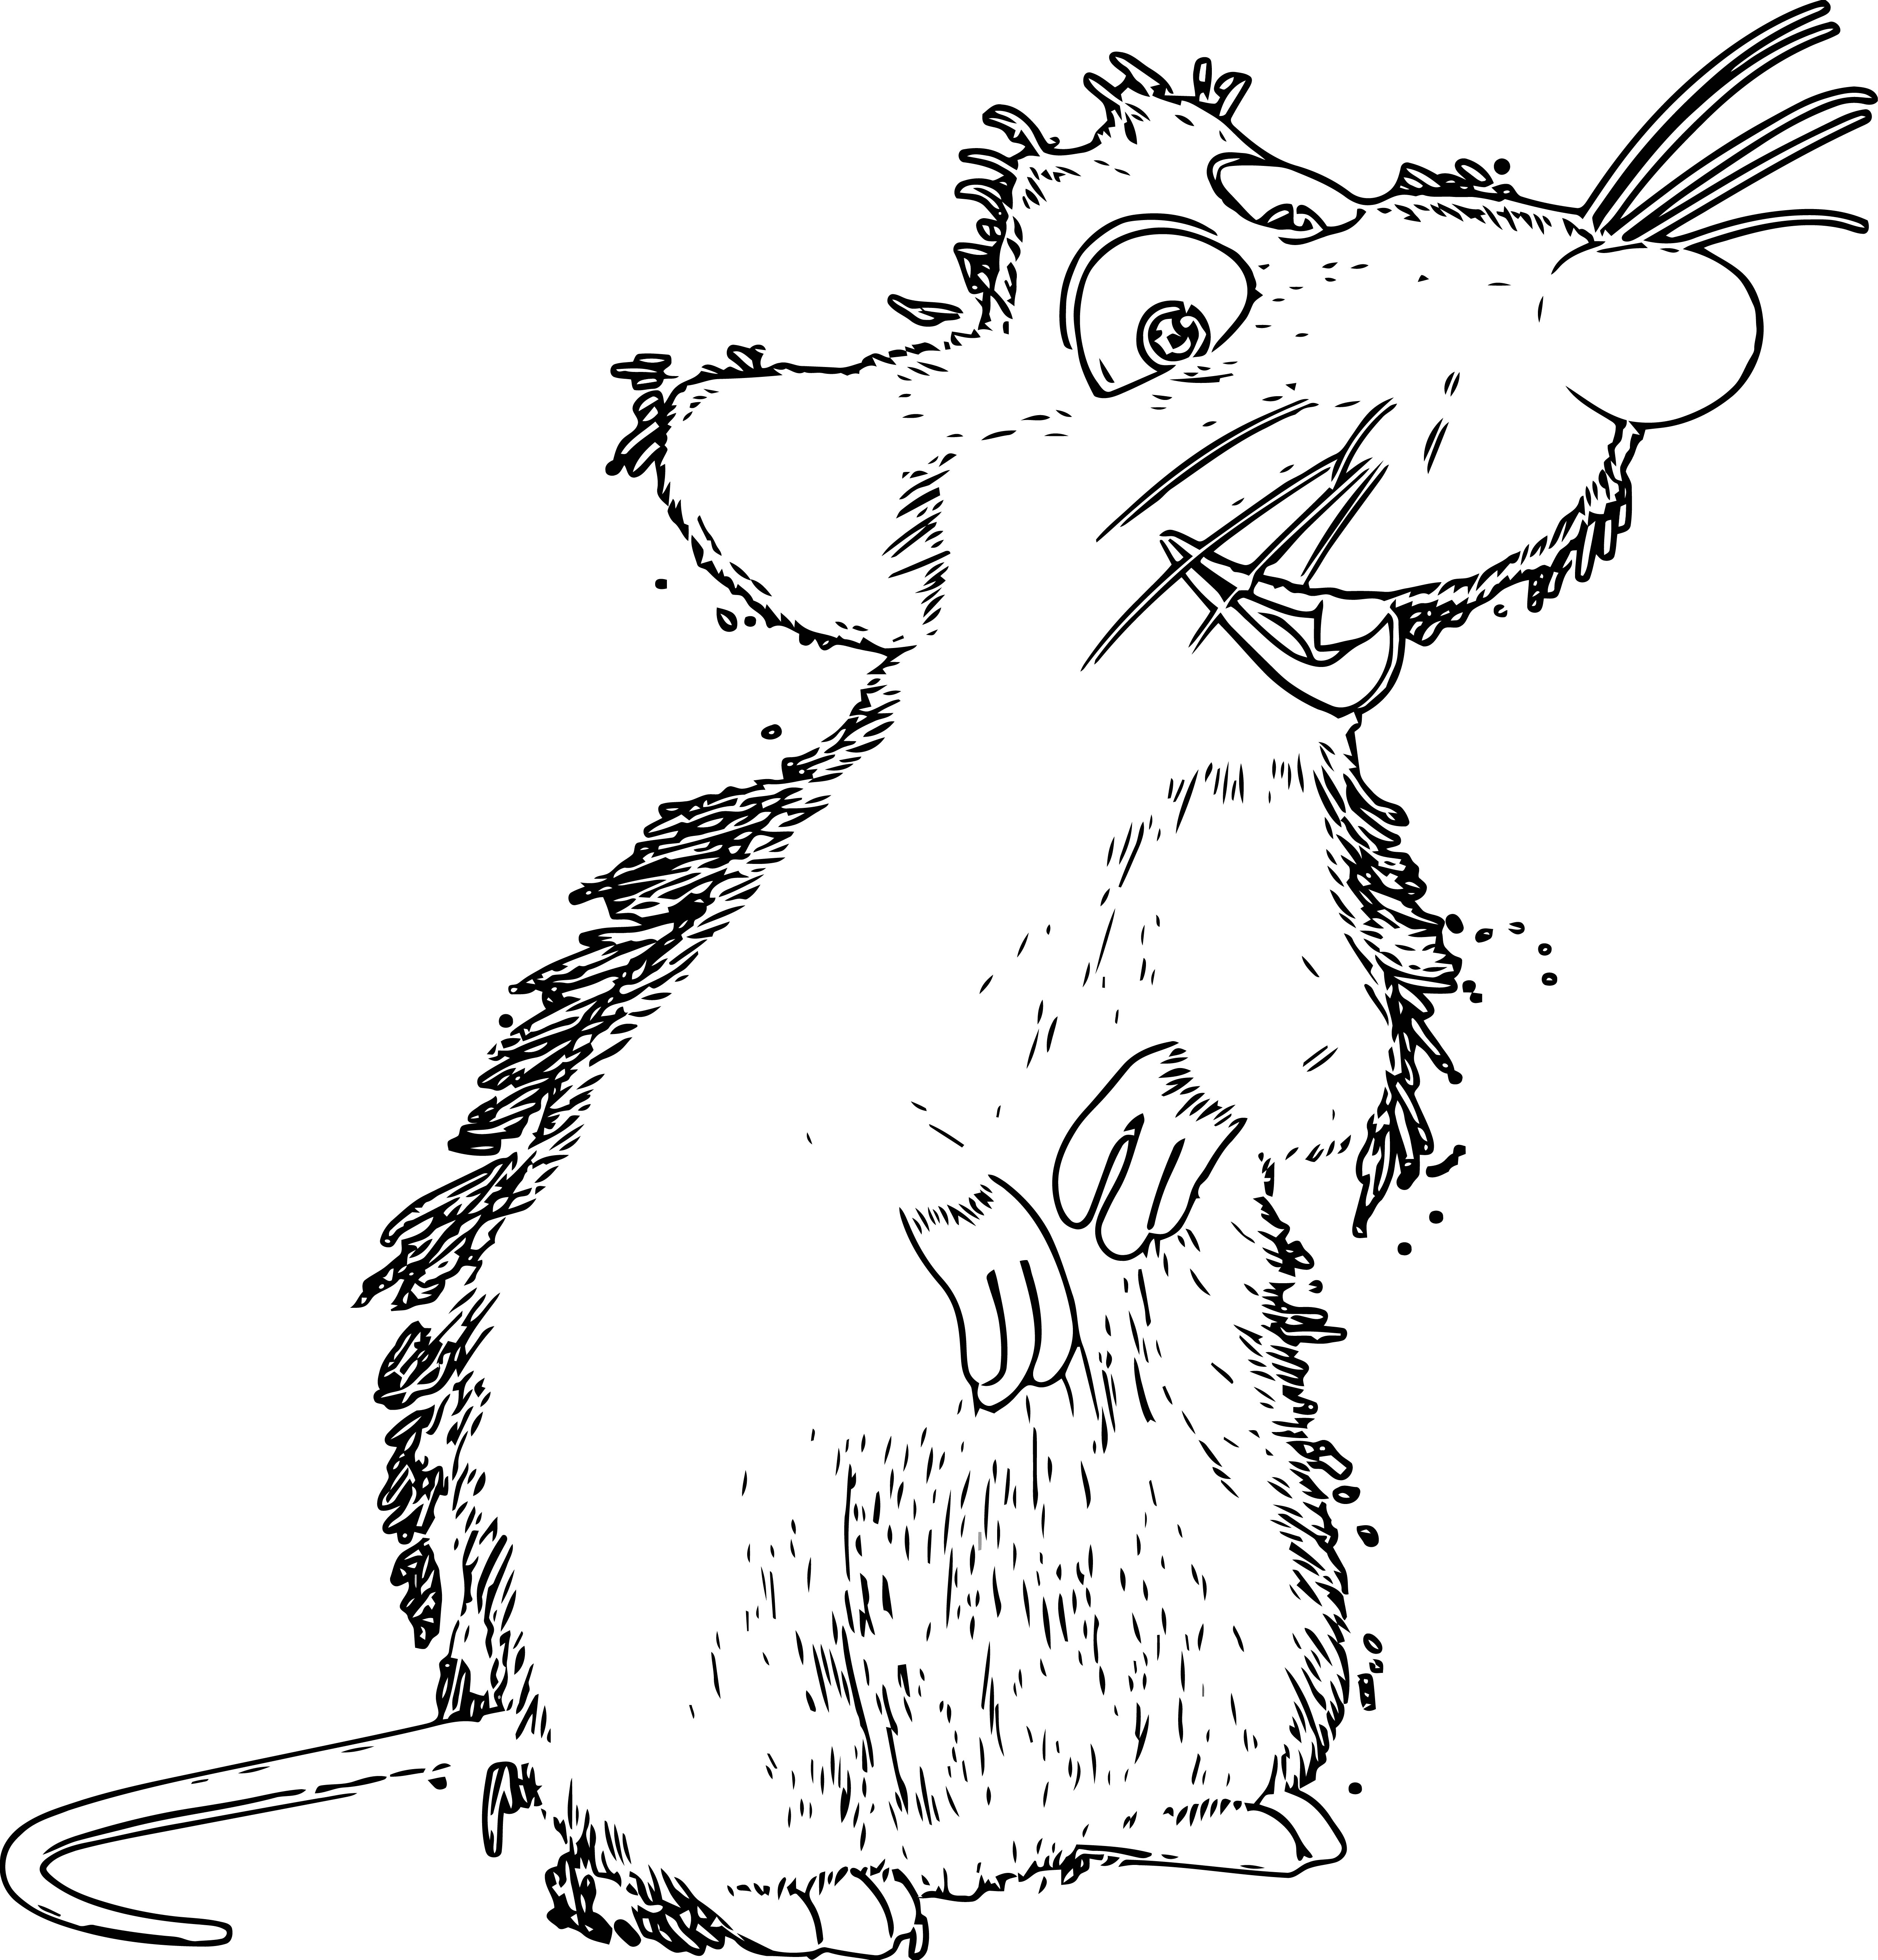 Mouse Jpeg Coloring Page 108